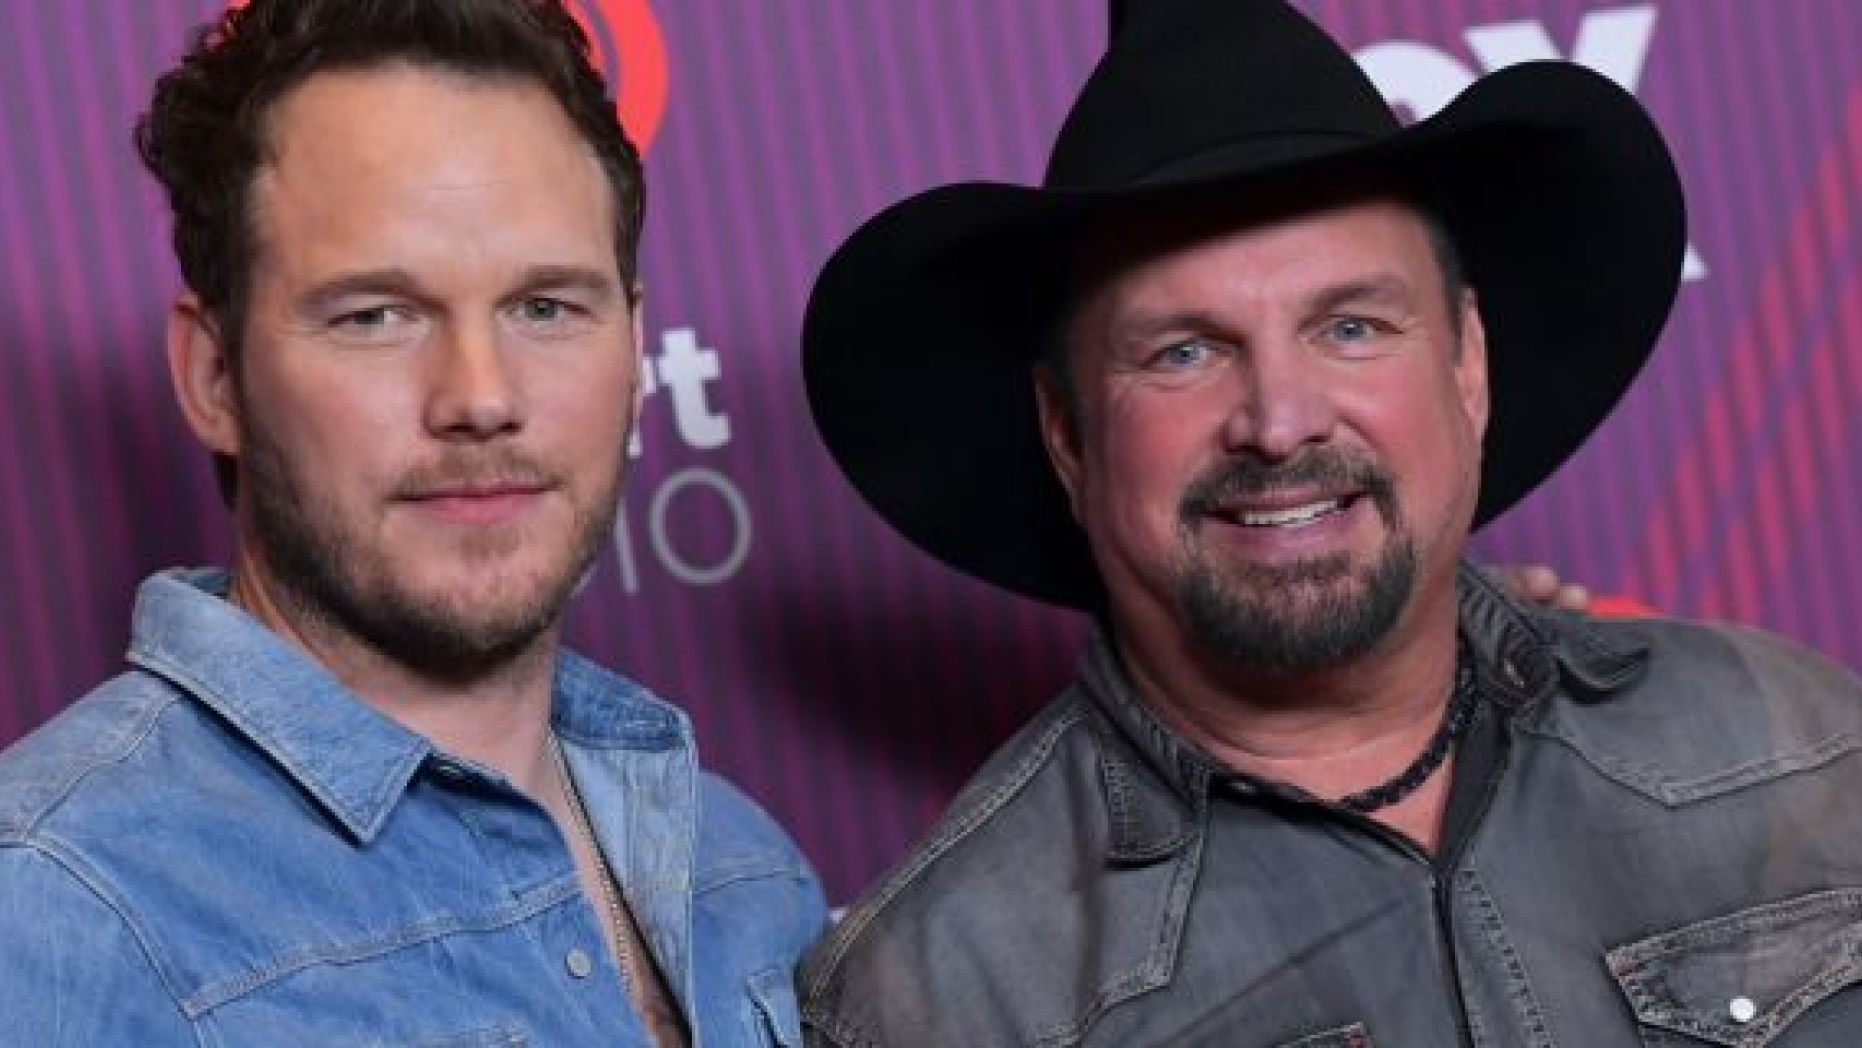 Garth Brooks and Chris Pratt pose in the press room during the 2019 iHeart Radio Music Awards in Los Angeles on Thursday.